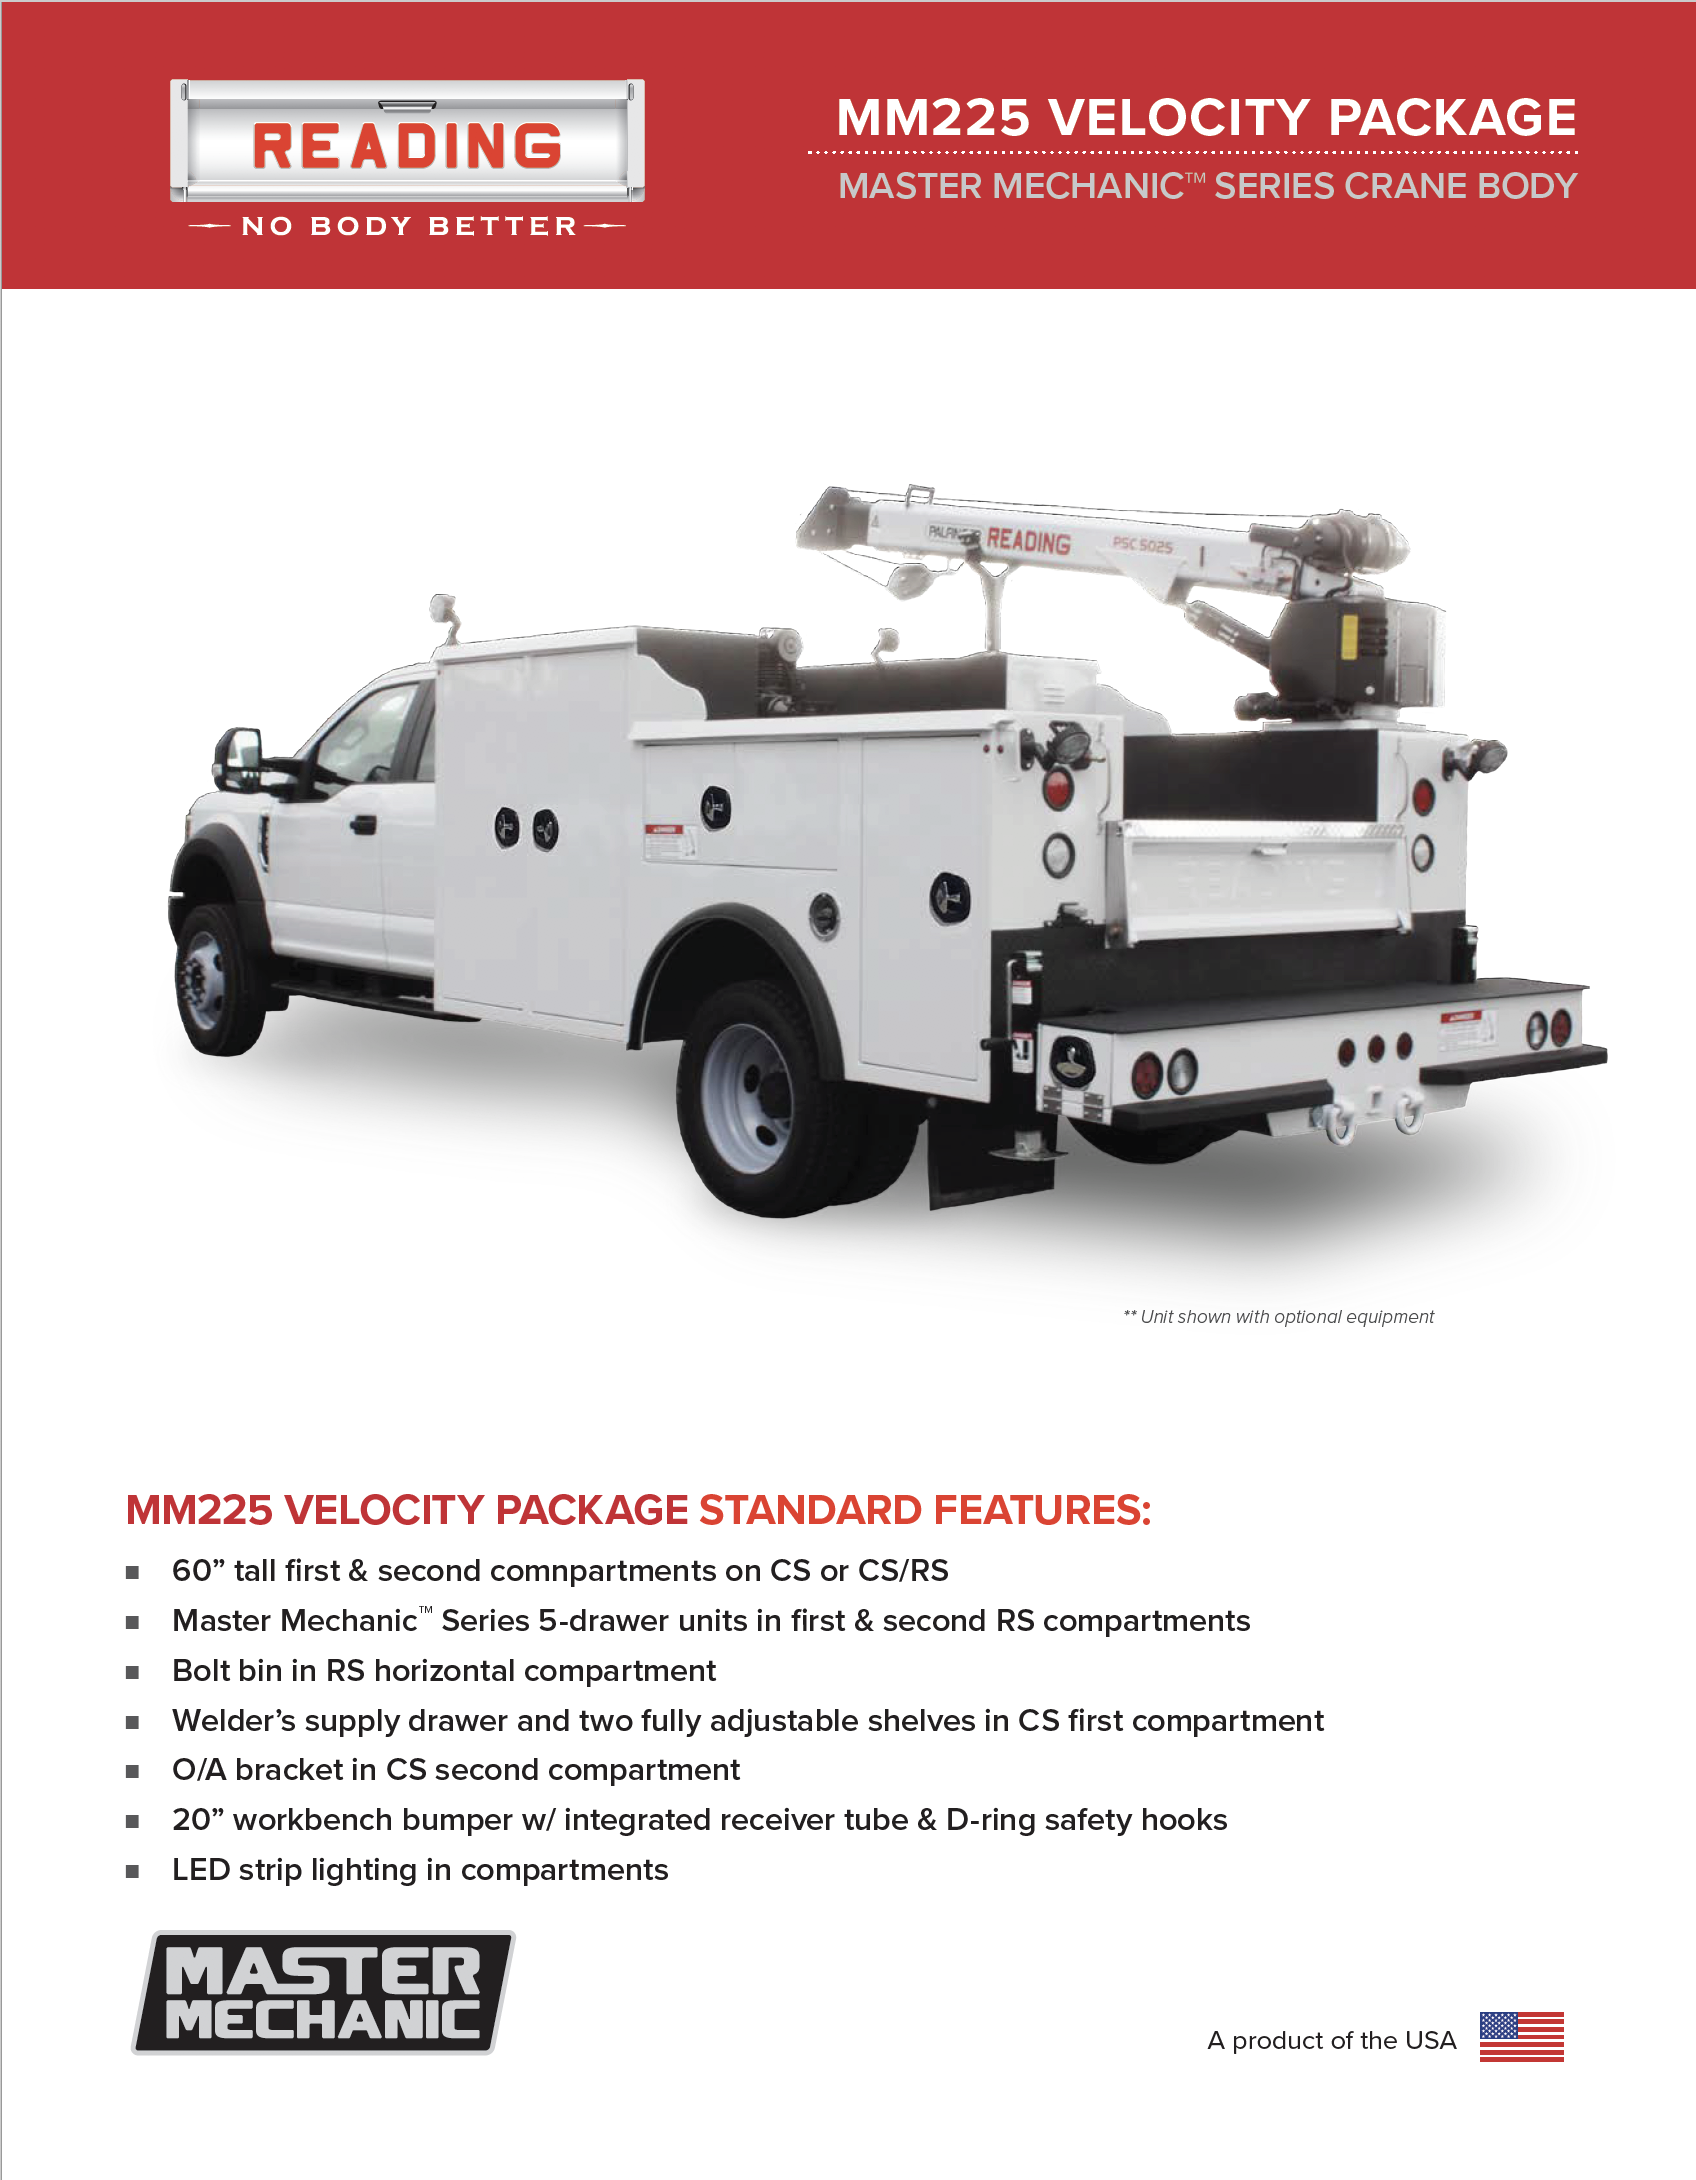 MM225 Velocity Package Product Literature